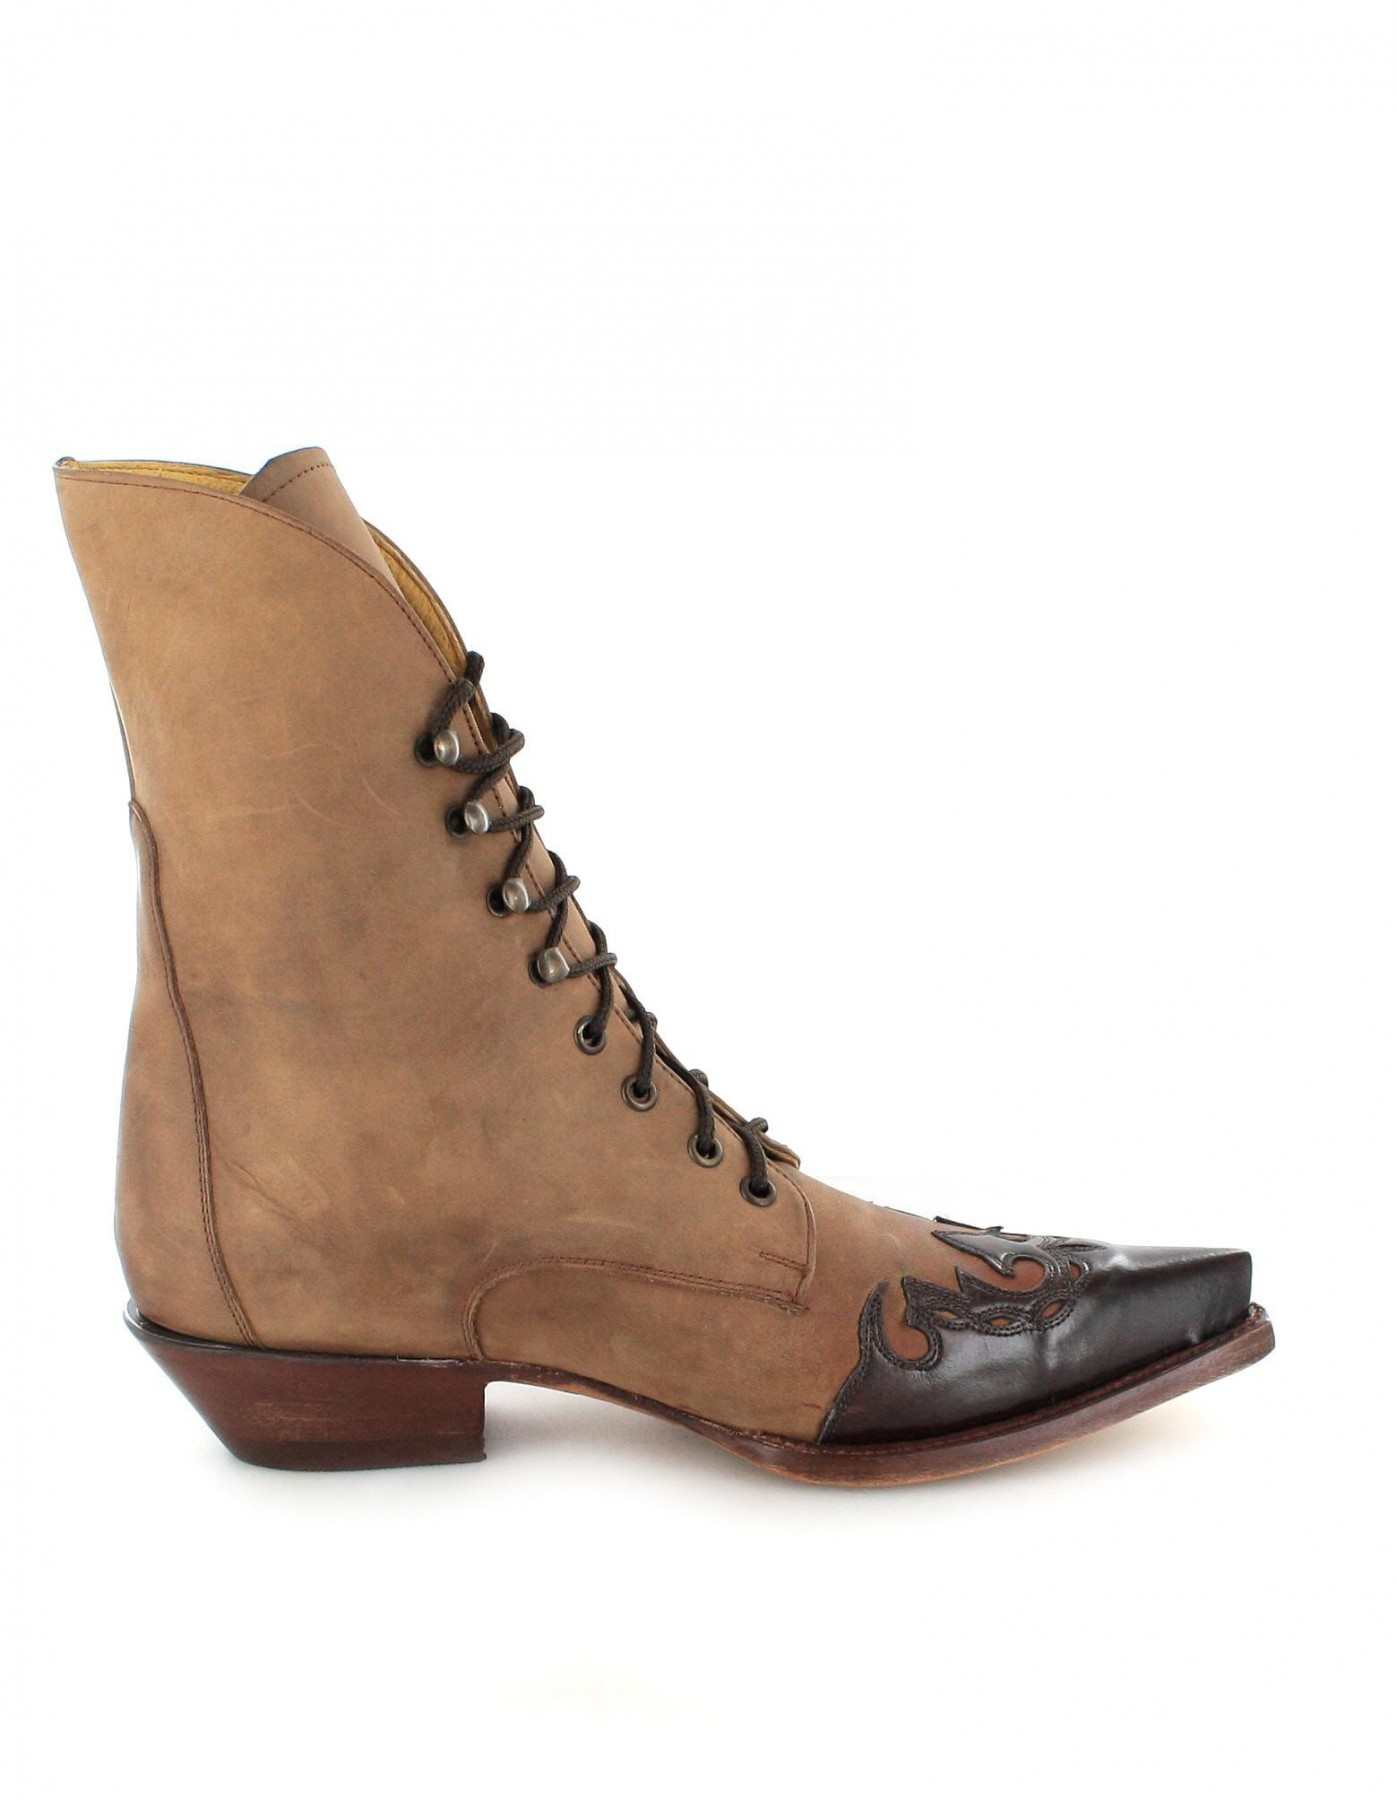 mezcalero boots quincy 0756 western laced ankle boot